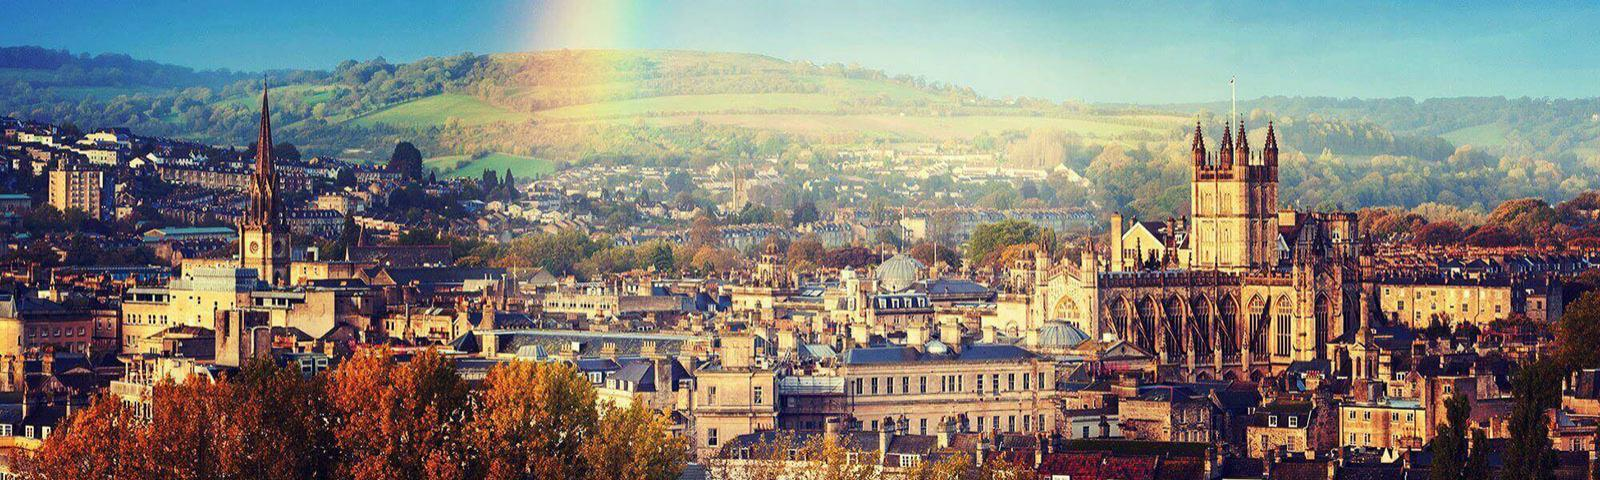 Panoramic view of the city of Bath.